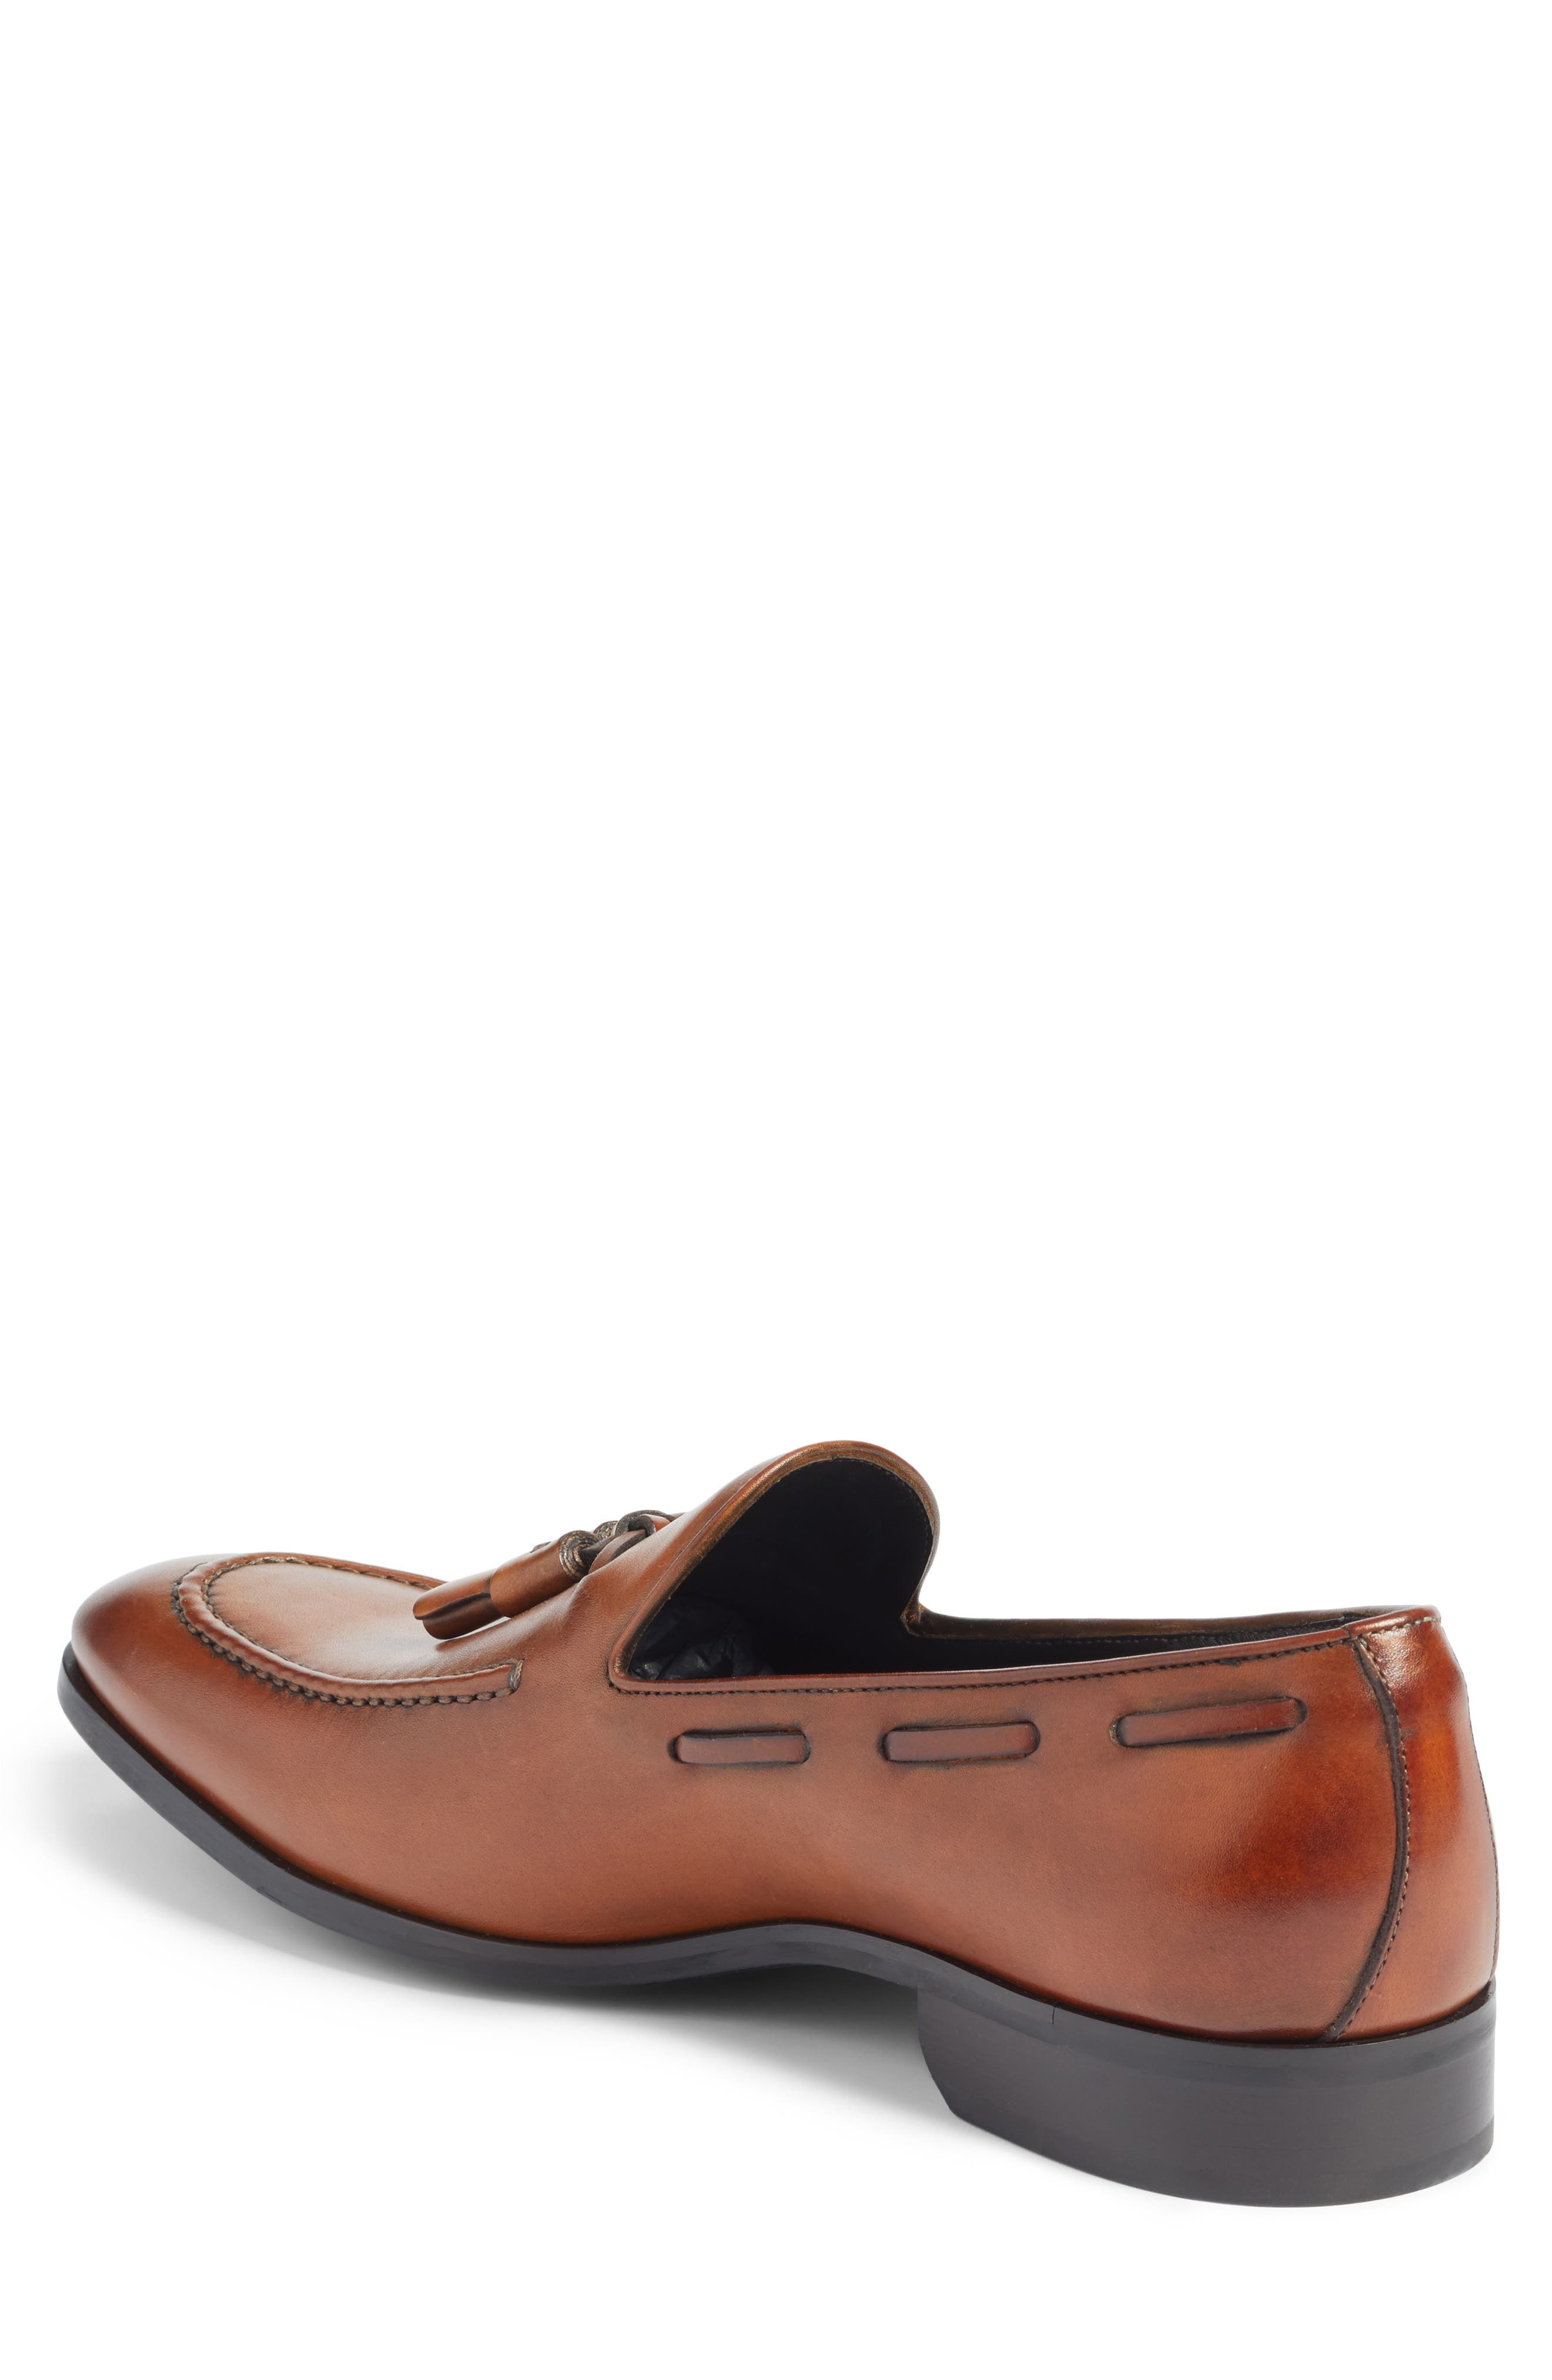 Barclay Tassel Loafer,                             Alternate thumbnail 2, color,                             COGNAC LEATHER